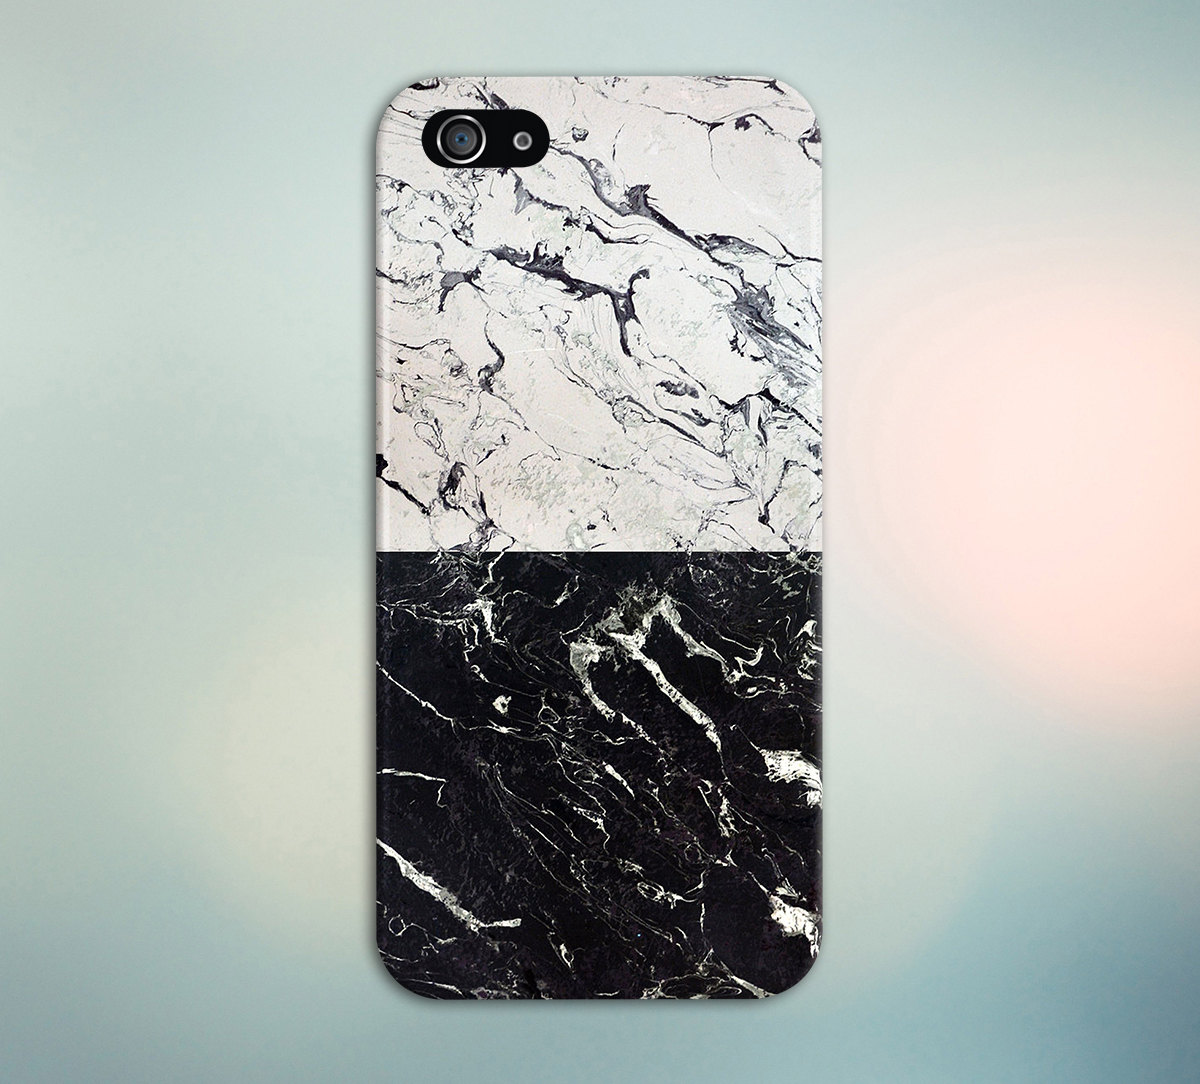 Cracked White X Black Marble Split Design Phone Case For IPhone 8 6 Plus Samsung Galaxy S8 Edge S6 And Note